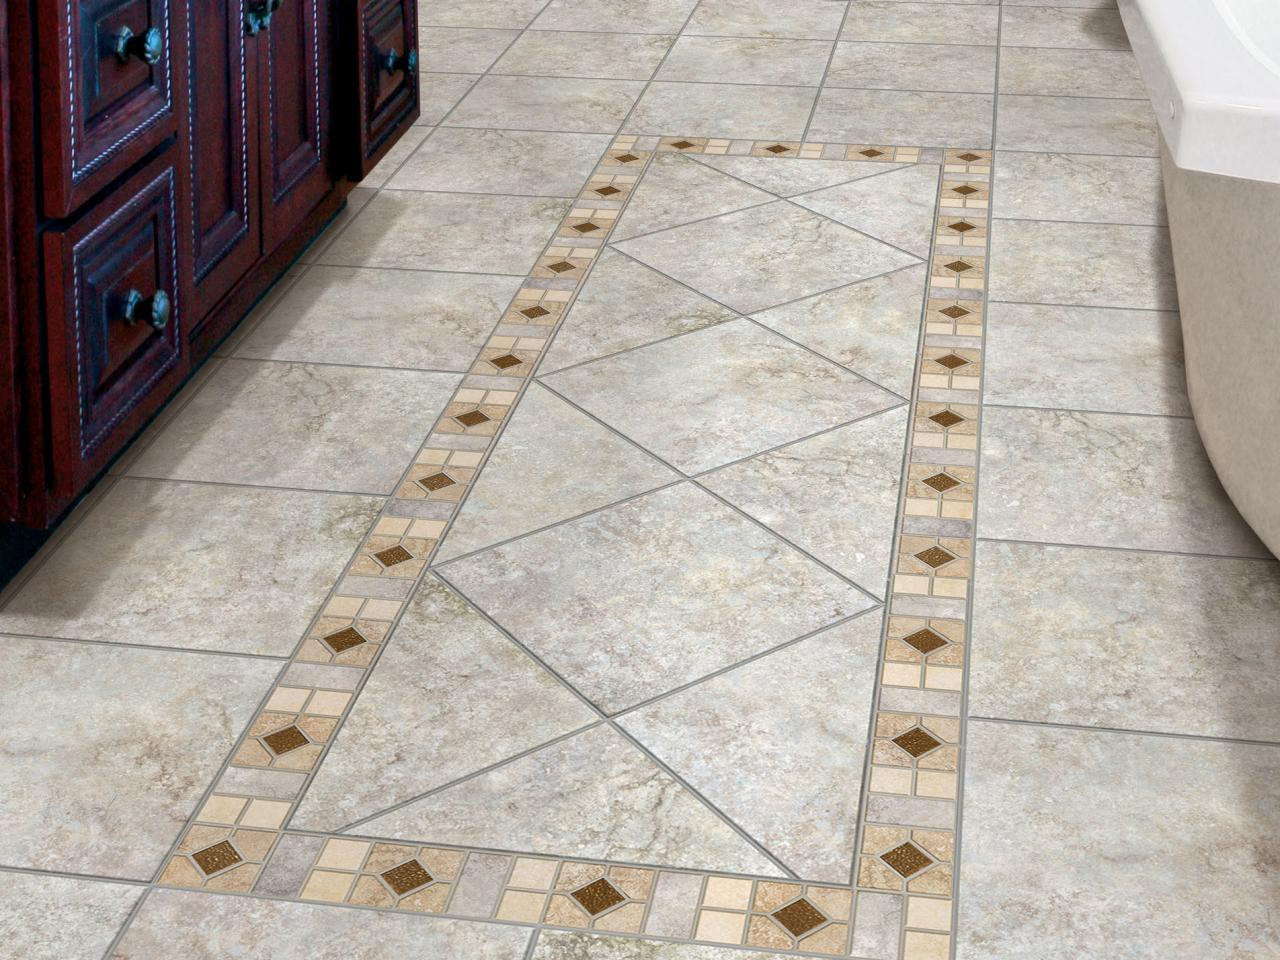 SP0241_floor-diamonds_s3x4_H.jpg.rend.hgtvcom.1280.960